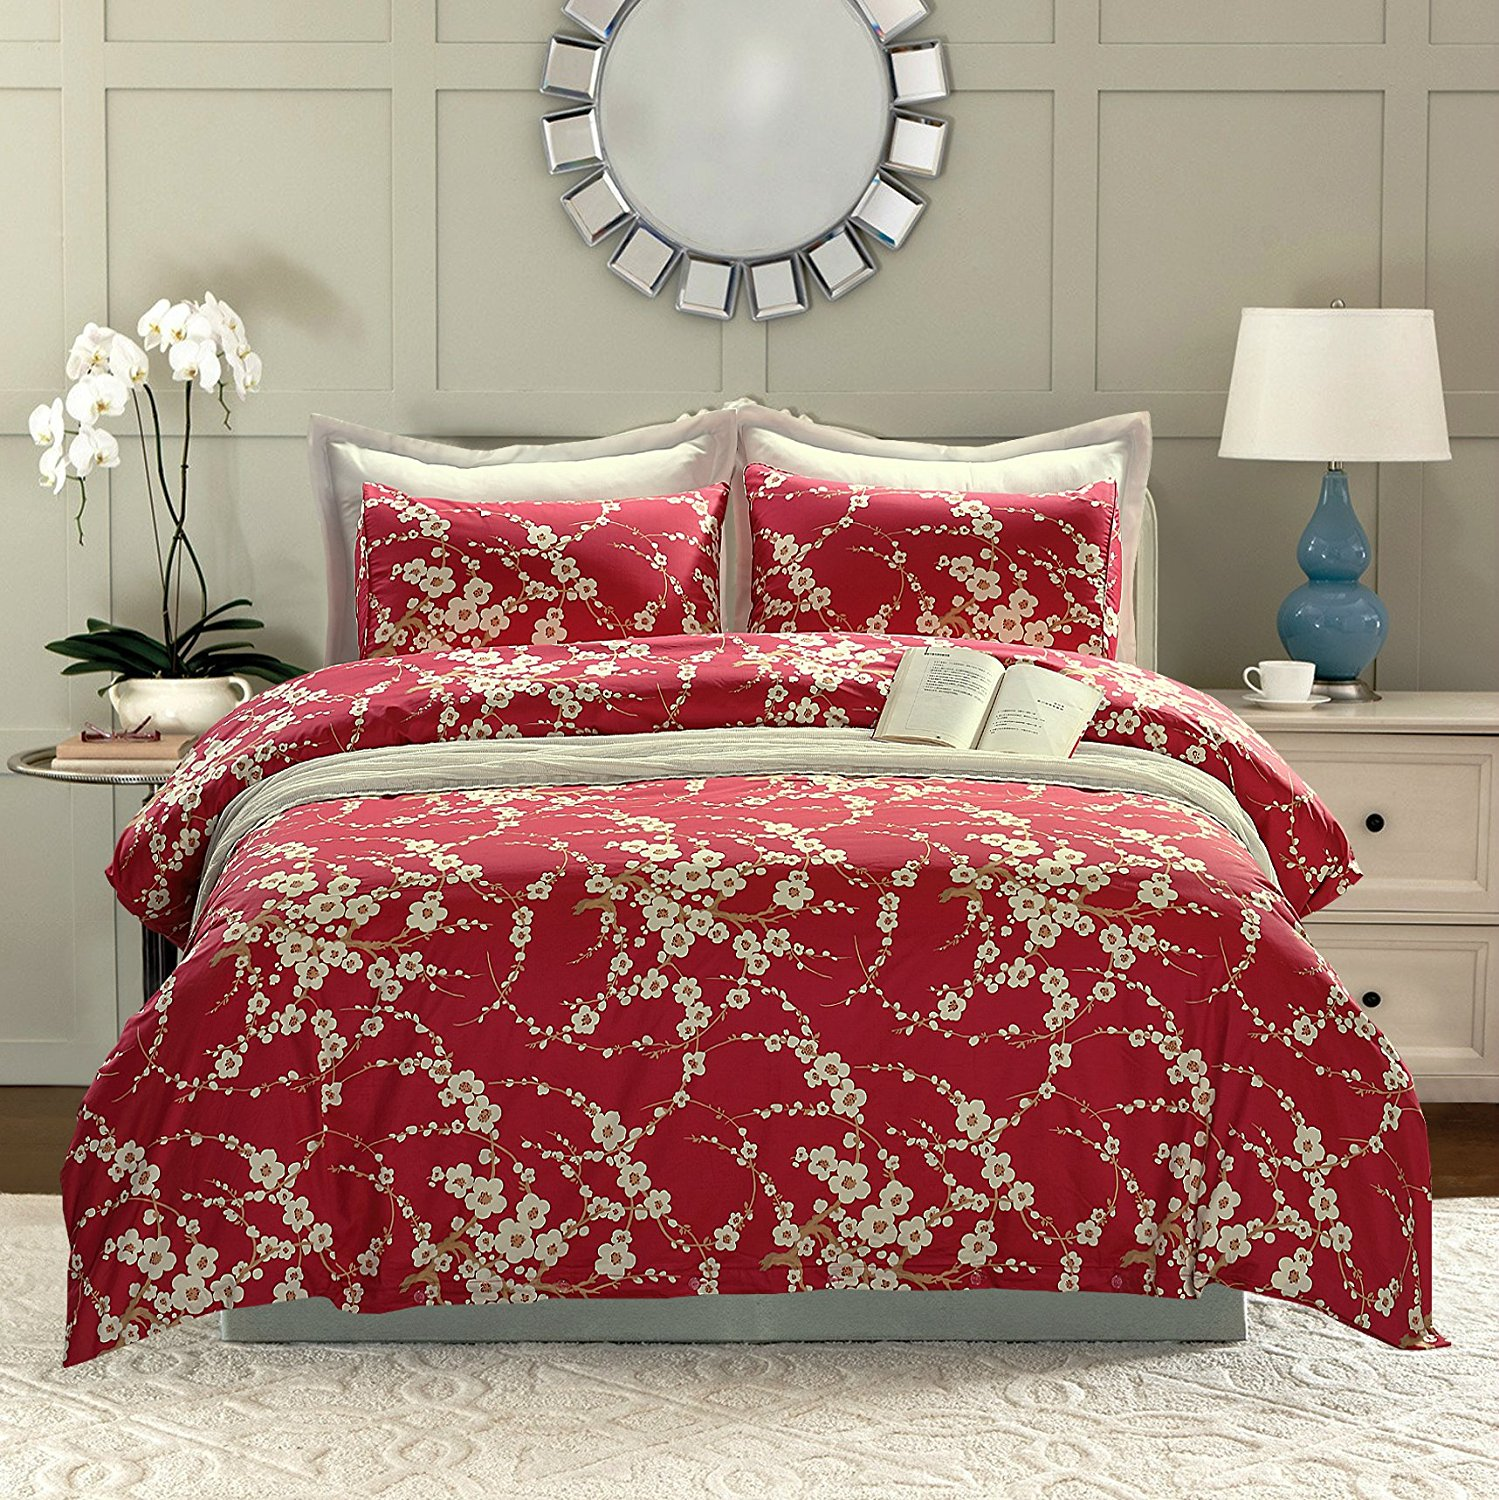 Red Cherry Blossom Duvet Cover And Pillow Cover Set